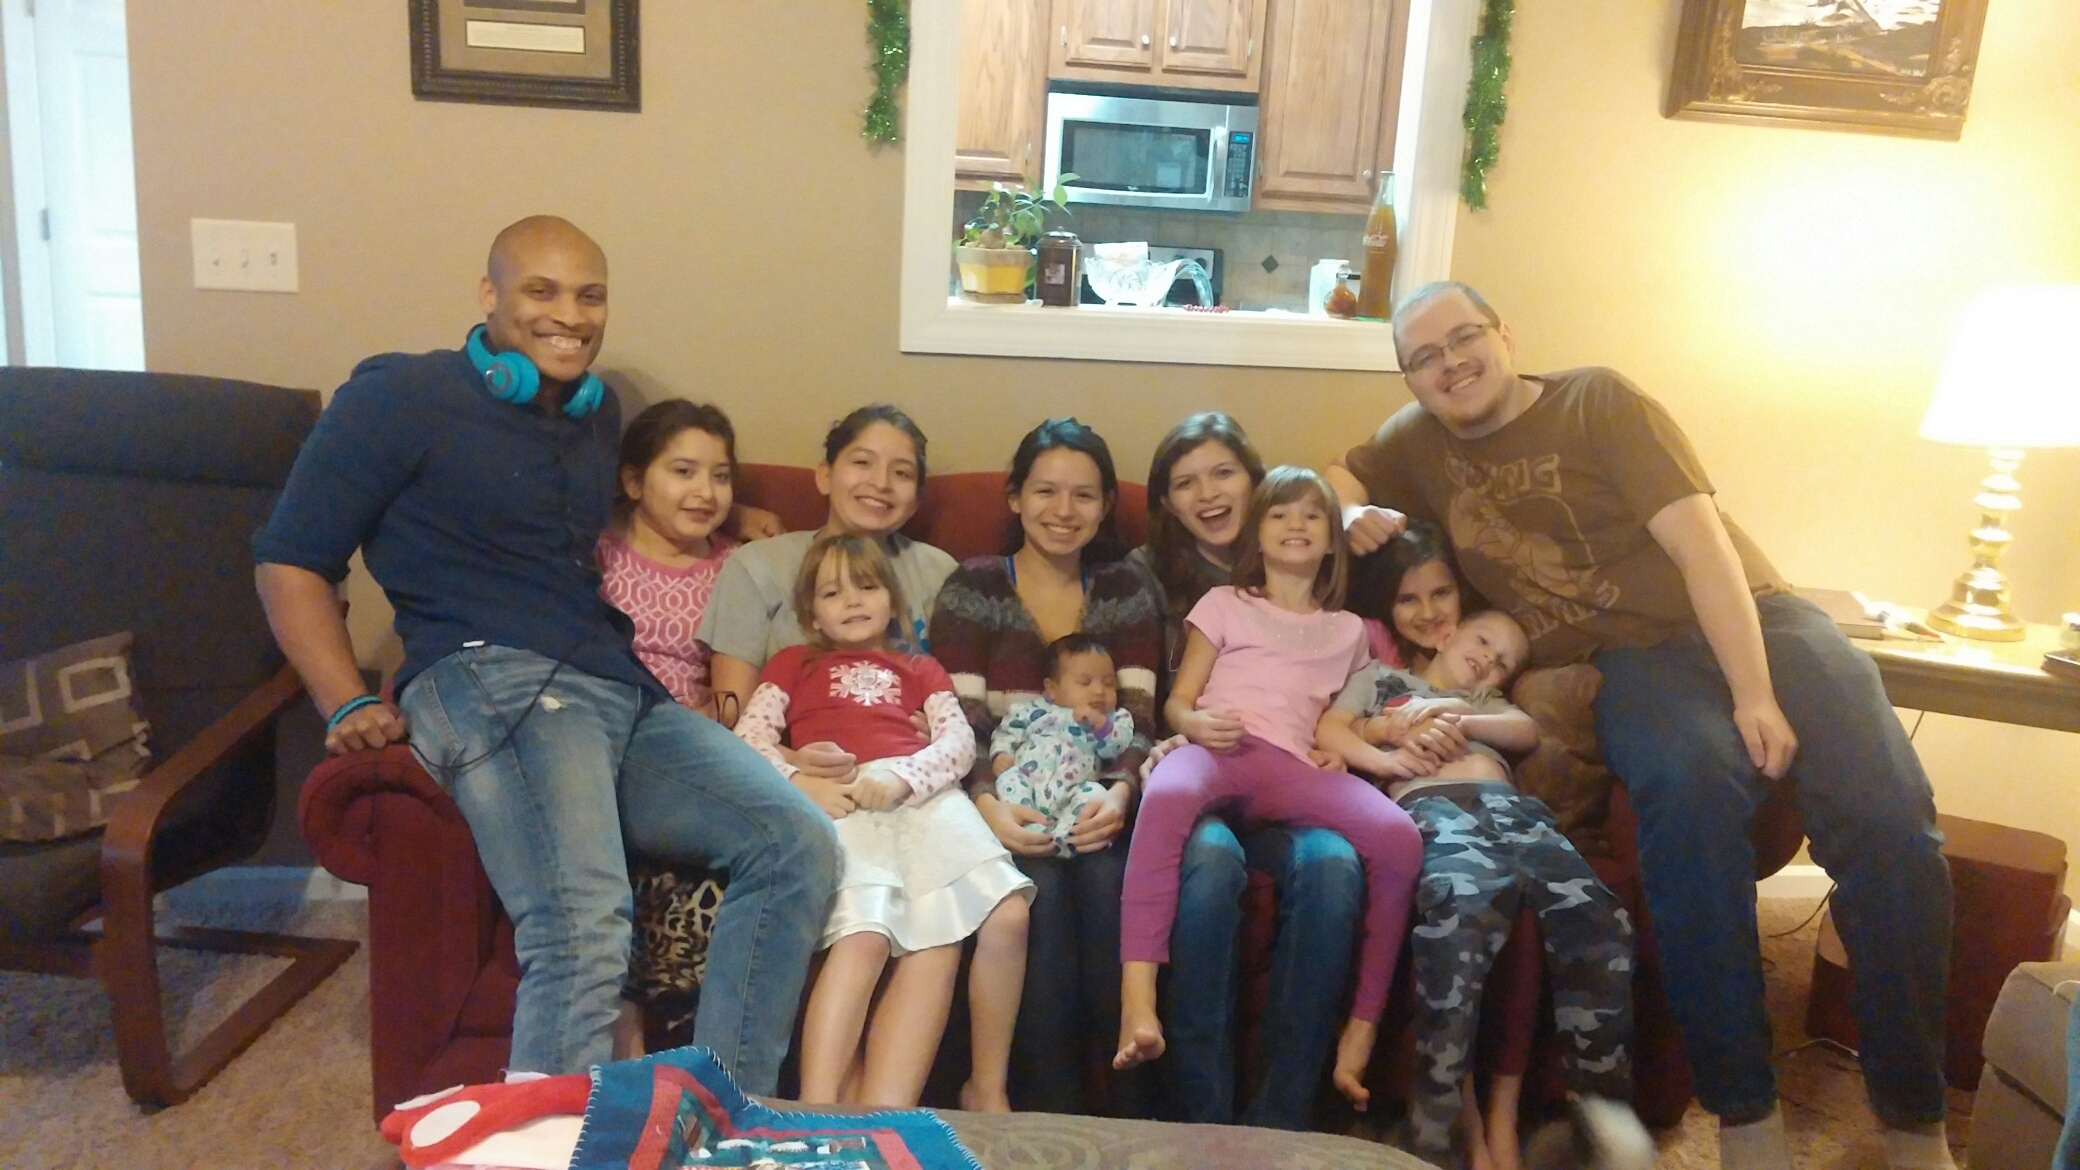 photo from Thanksgiving on couch, November 2015 We also get a BONUS daughter, son-in-law and grandbaby! Our girls have an old sister. She is married to Regi and they have a sweet new baby girl On couch from left to right: Regi, Lauren, Jordan Lili, Maria, Floentina, and Nathan on laps: Alyssa, Maya, Bella and Casey